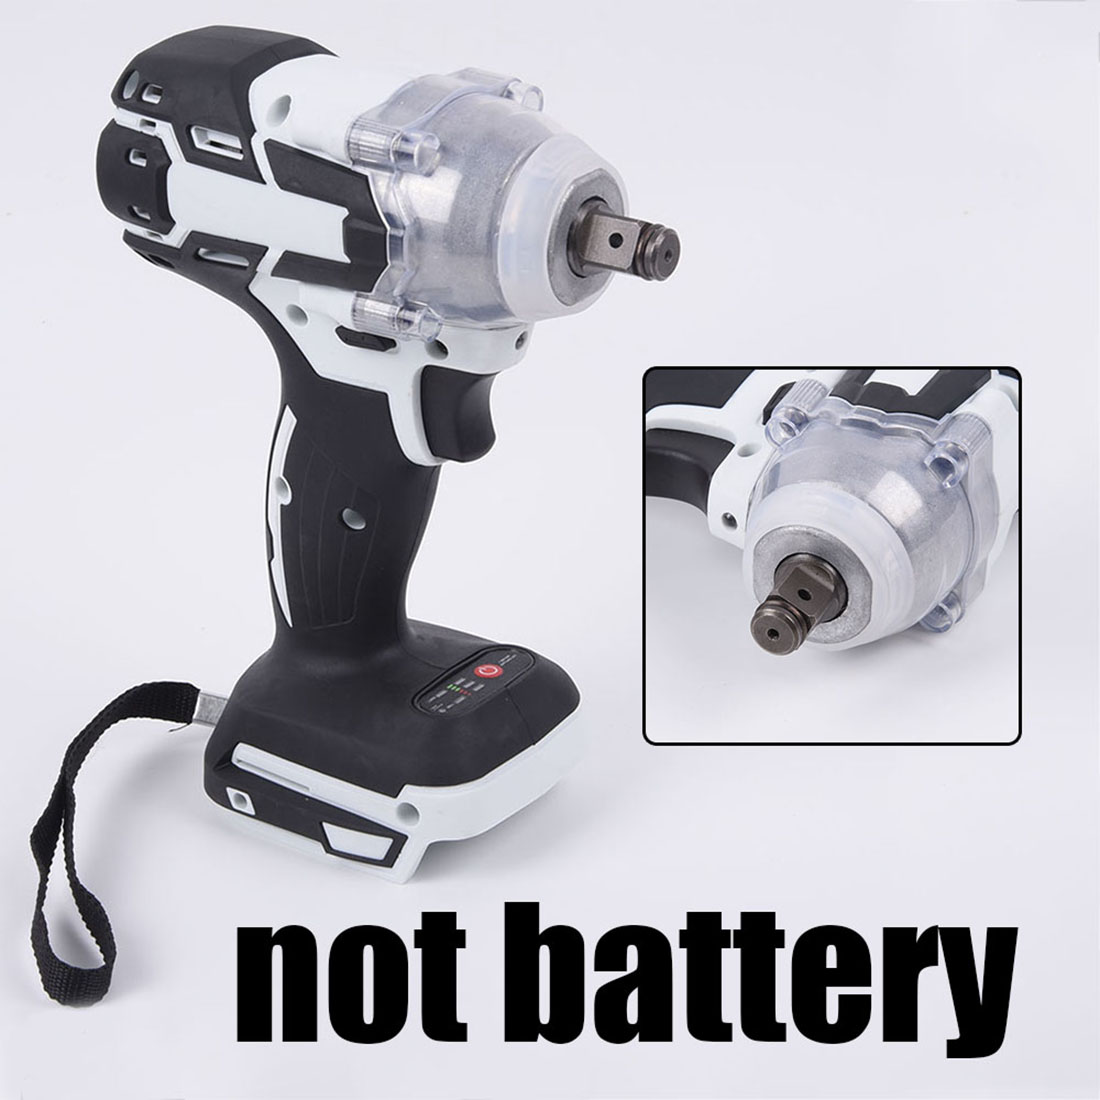 New Brushless Wrench / Adapter+Mandrel Quality 1280W Brushless Electric Hammer Cordless Drill 19800mAH 240-520NM Adjustable